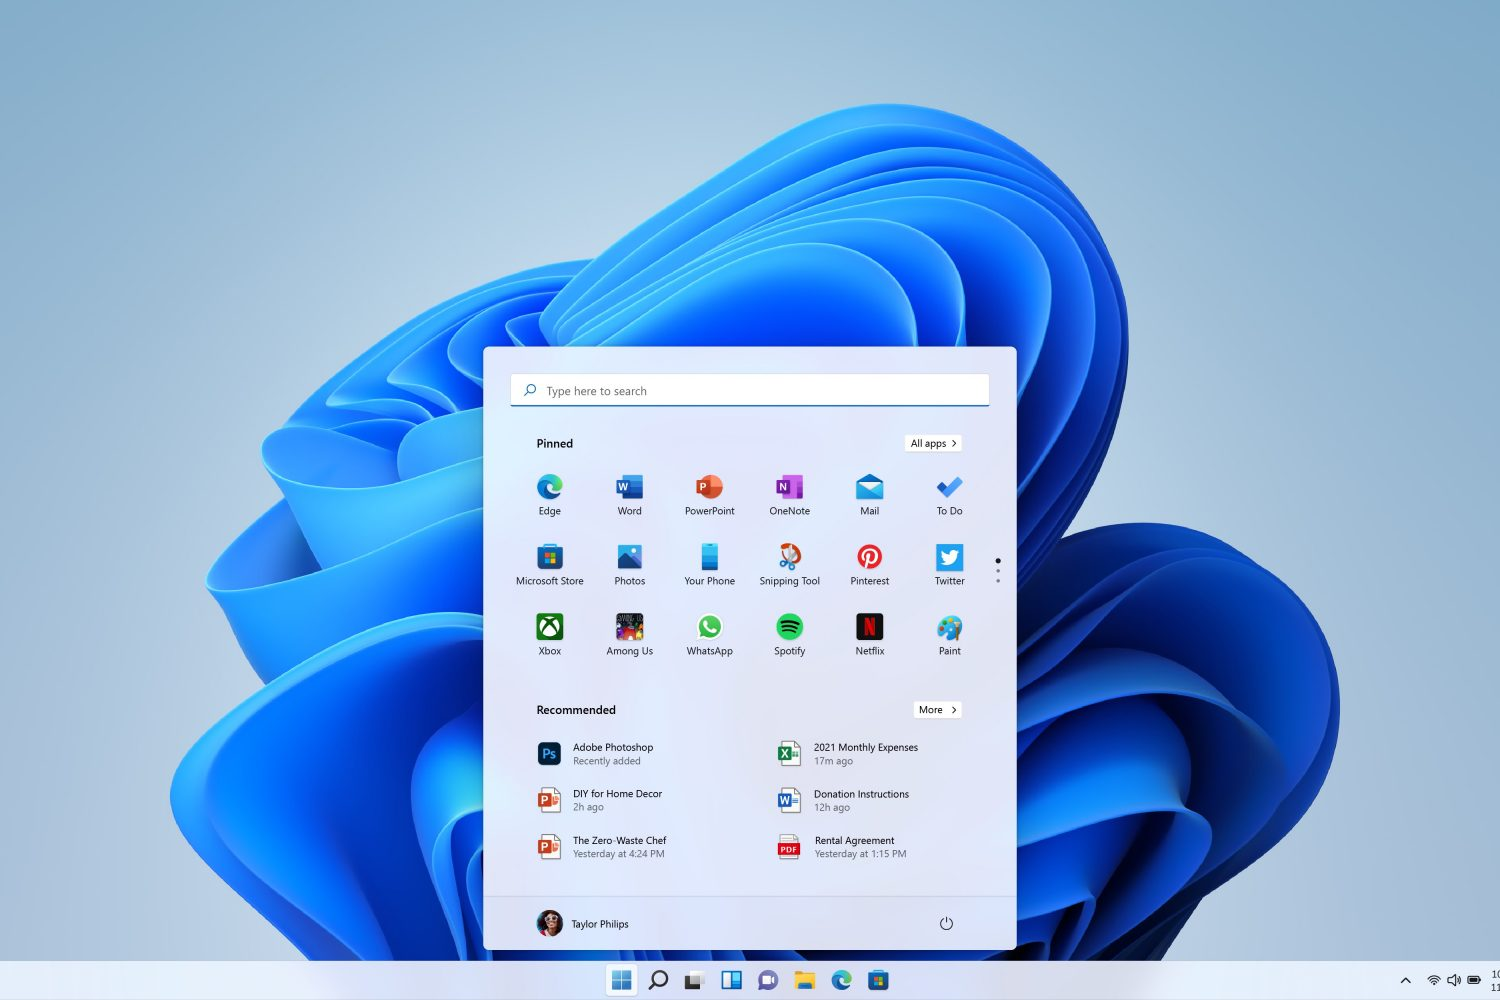 A promotional image from. Microsoft showing the Windows 11 desktop with light theme and the Start menu at the bottom center